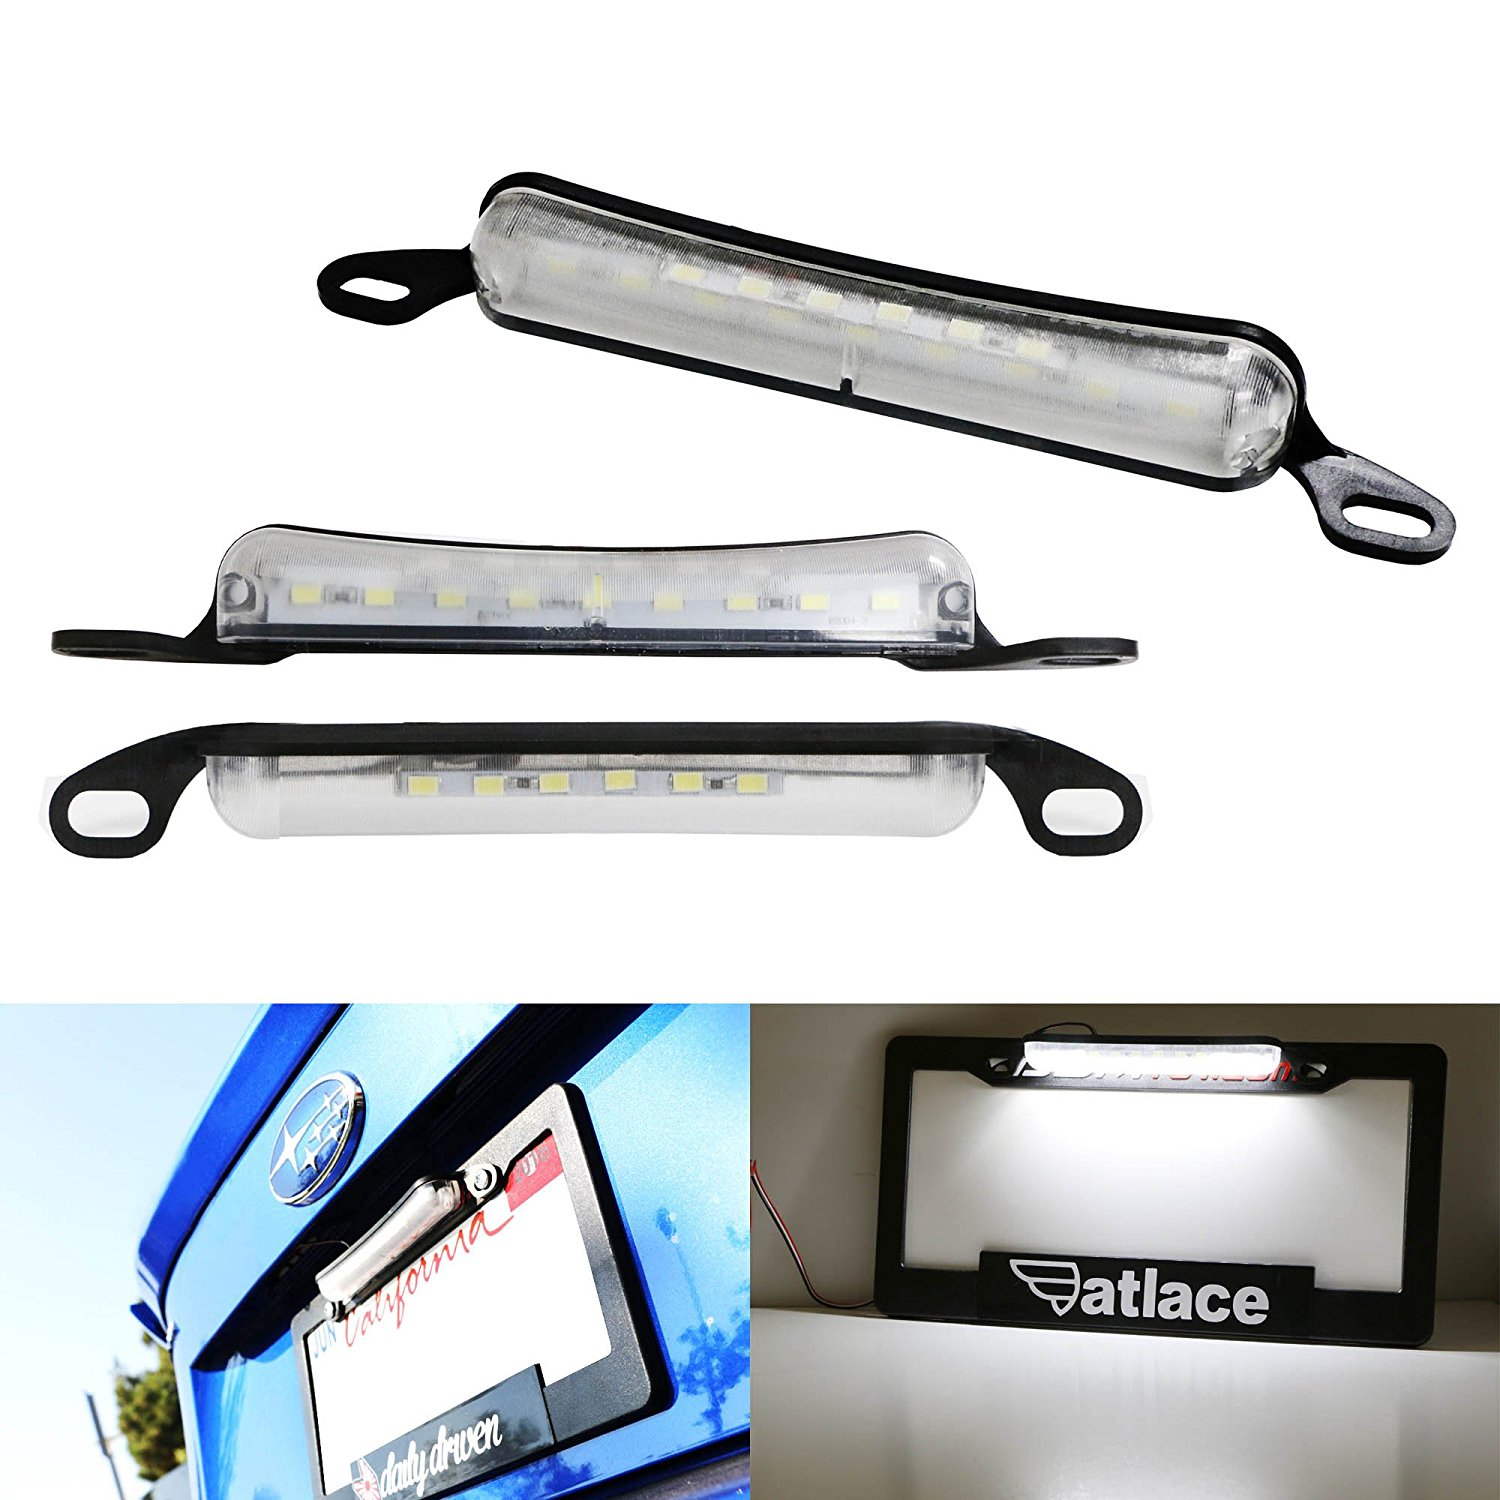 iJDMTOY Universal 15-SMD Two-Way License Frame Mount LED License Plate Light Plus LED Backup Reverse Light For Car Truck SUV Van RV, Xenon White